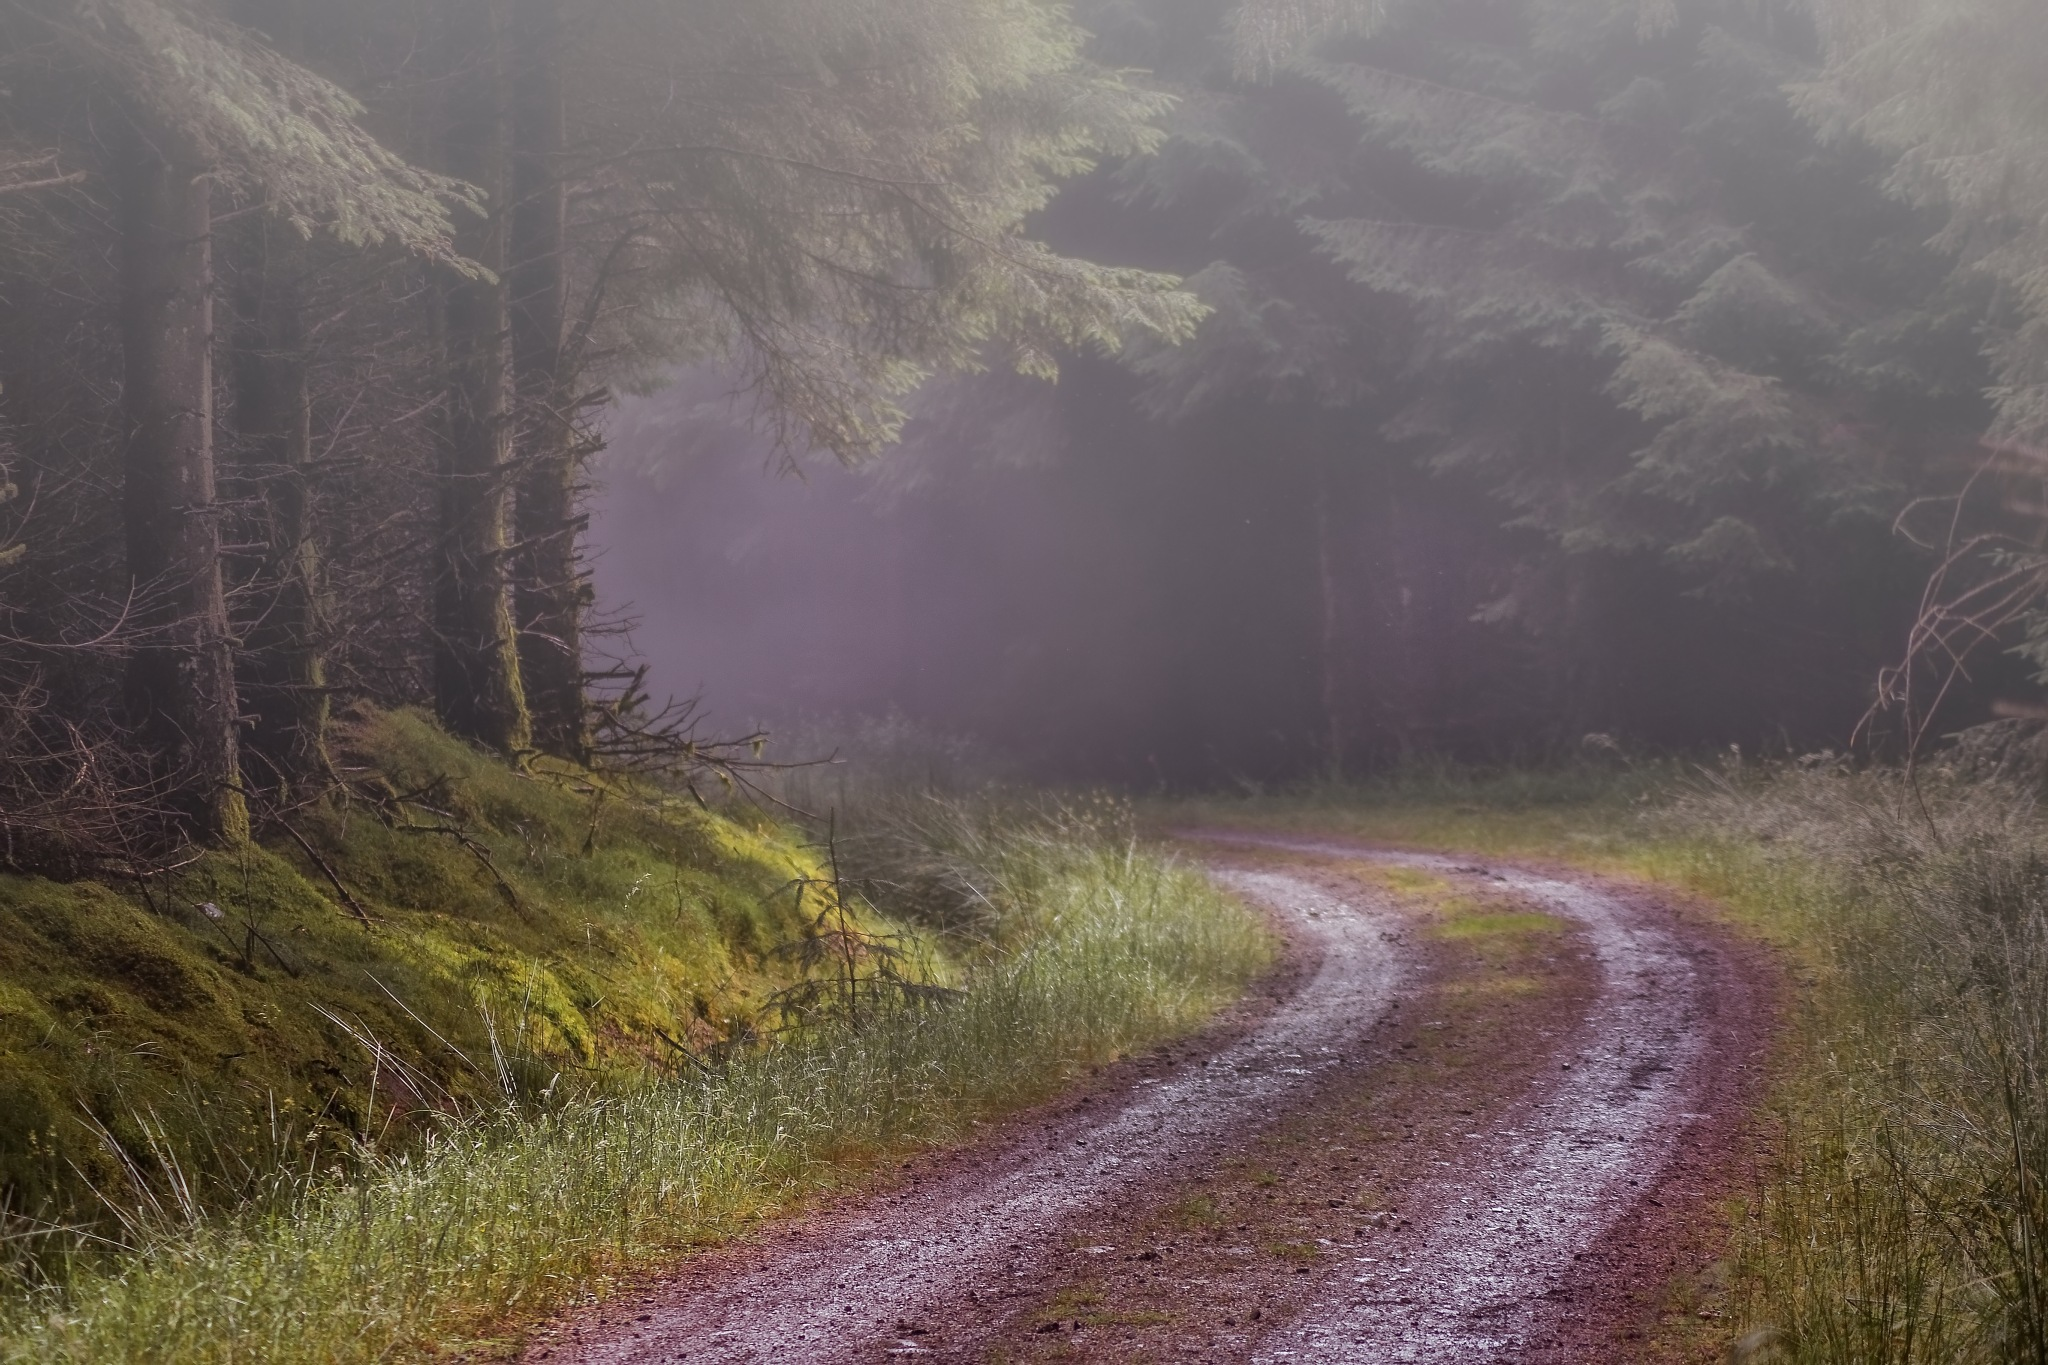 Fog in the forest. by sidoneill1